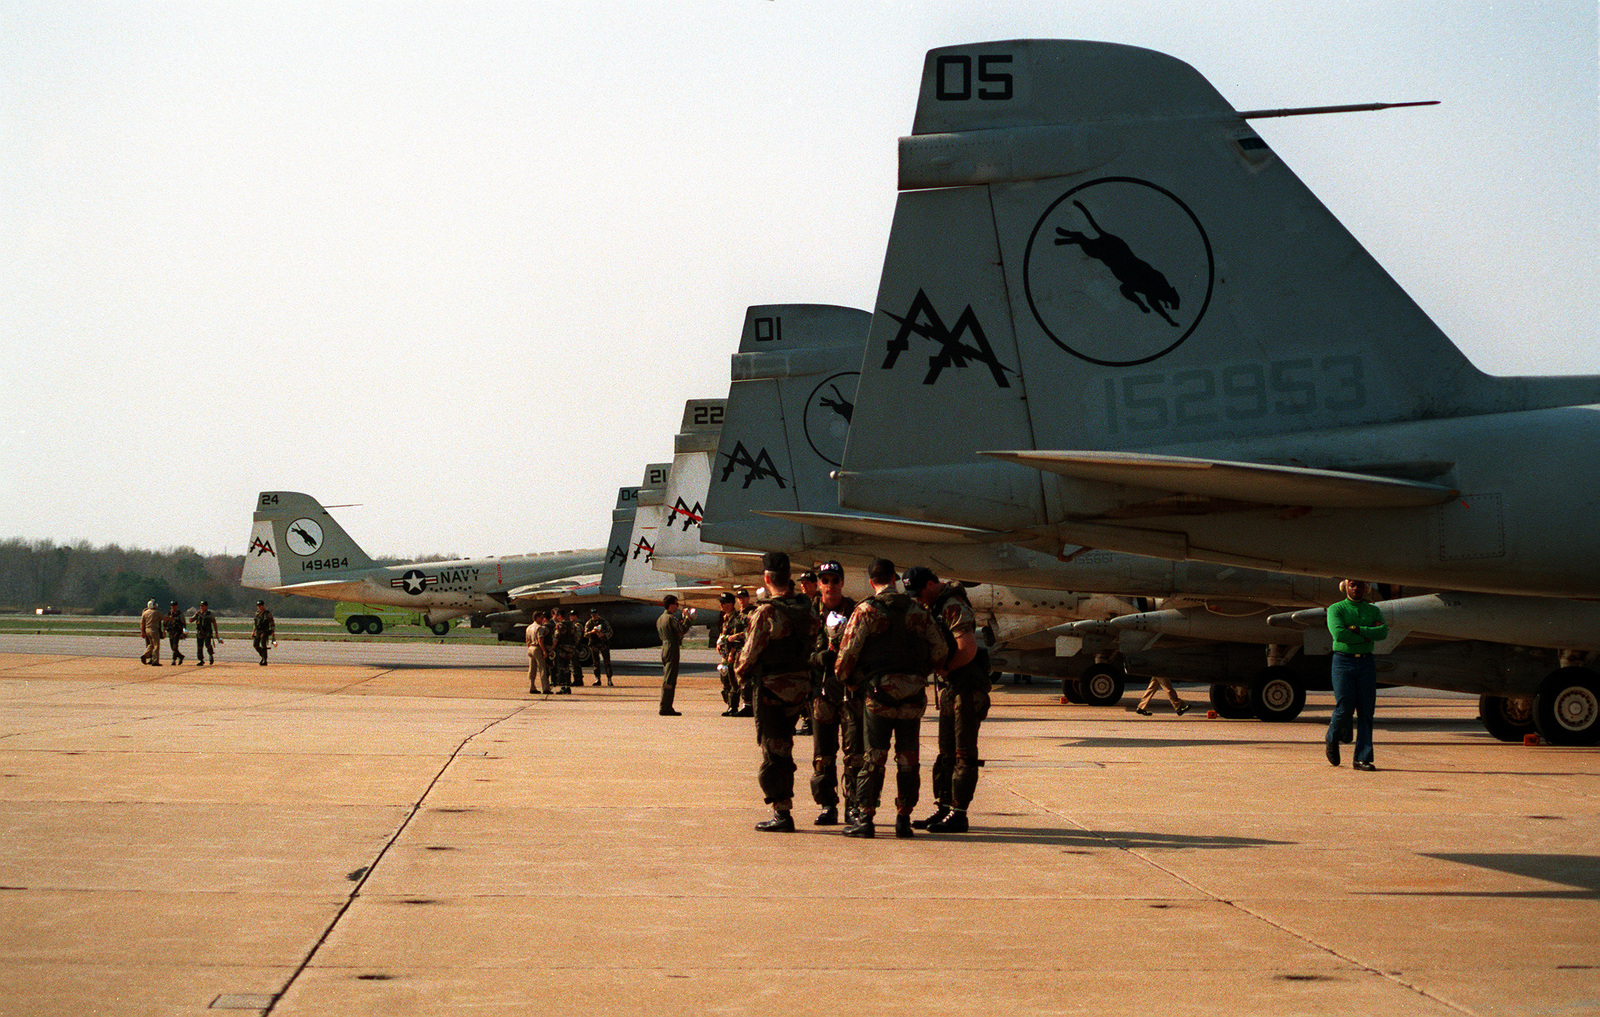 Several Attack Squadron 35 (VA-35) flight crews gather near the tails of their A-6E Intruder aircraft as they wait for the squadron's remaining aircraft to taxi into place on the flight line. VA-35 has returned to Oceana following its deployment to the Persian Gulf region aboard the aircraft carrier USS SARATOGA (CV-60) for Operation Desert Shield and Operation Desert Storm